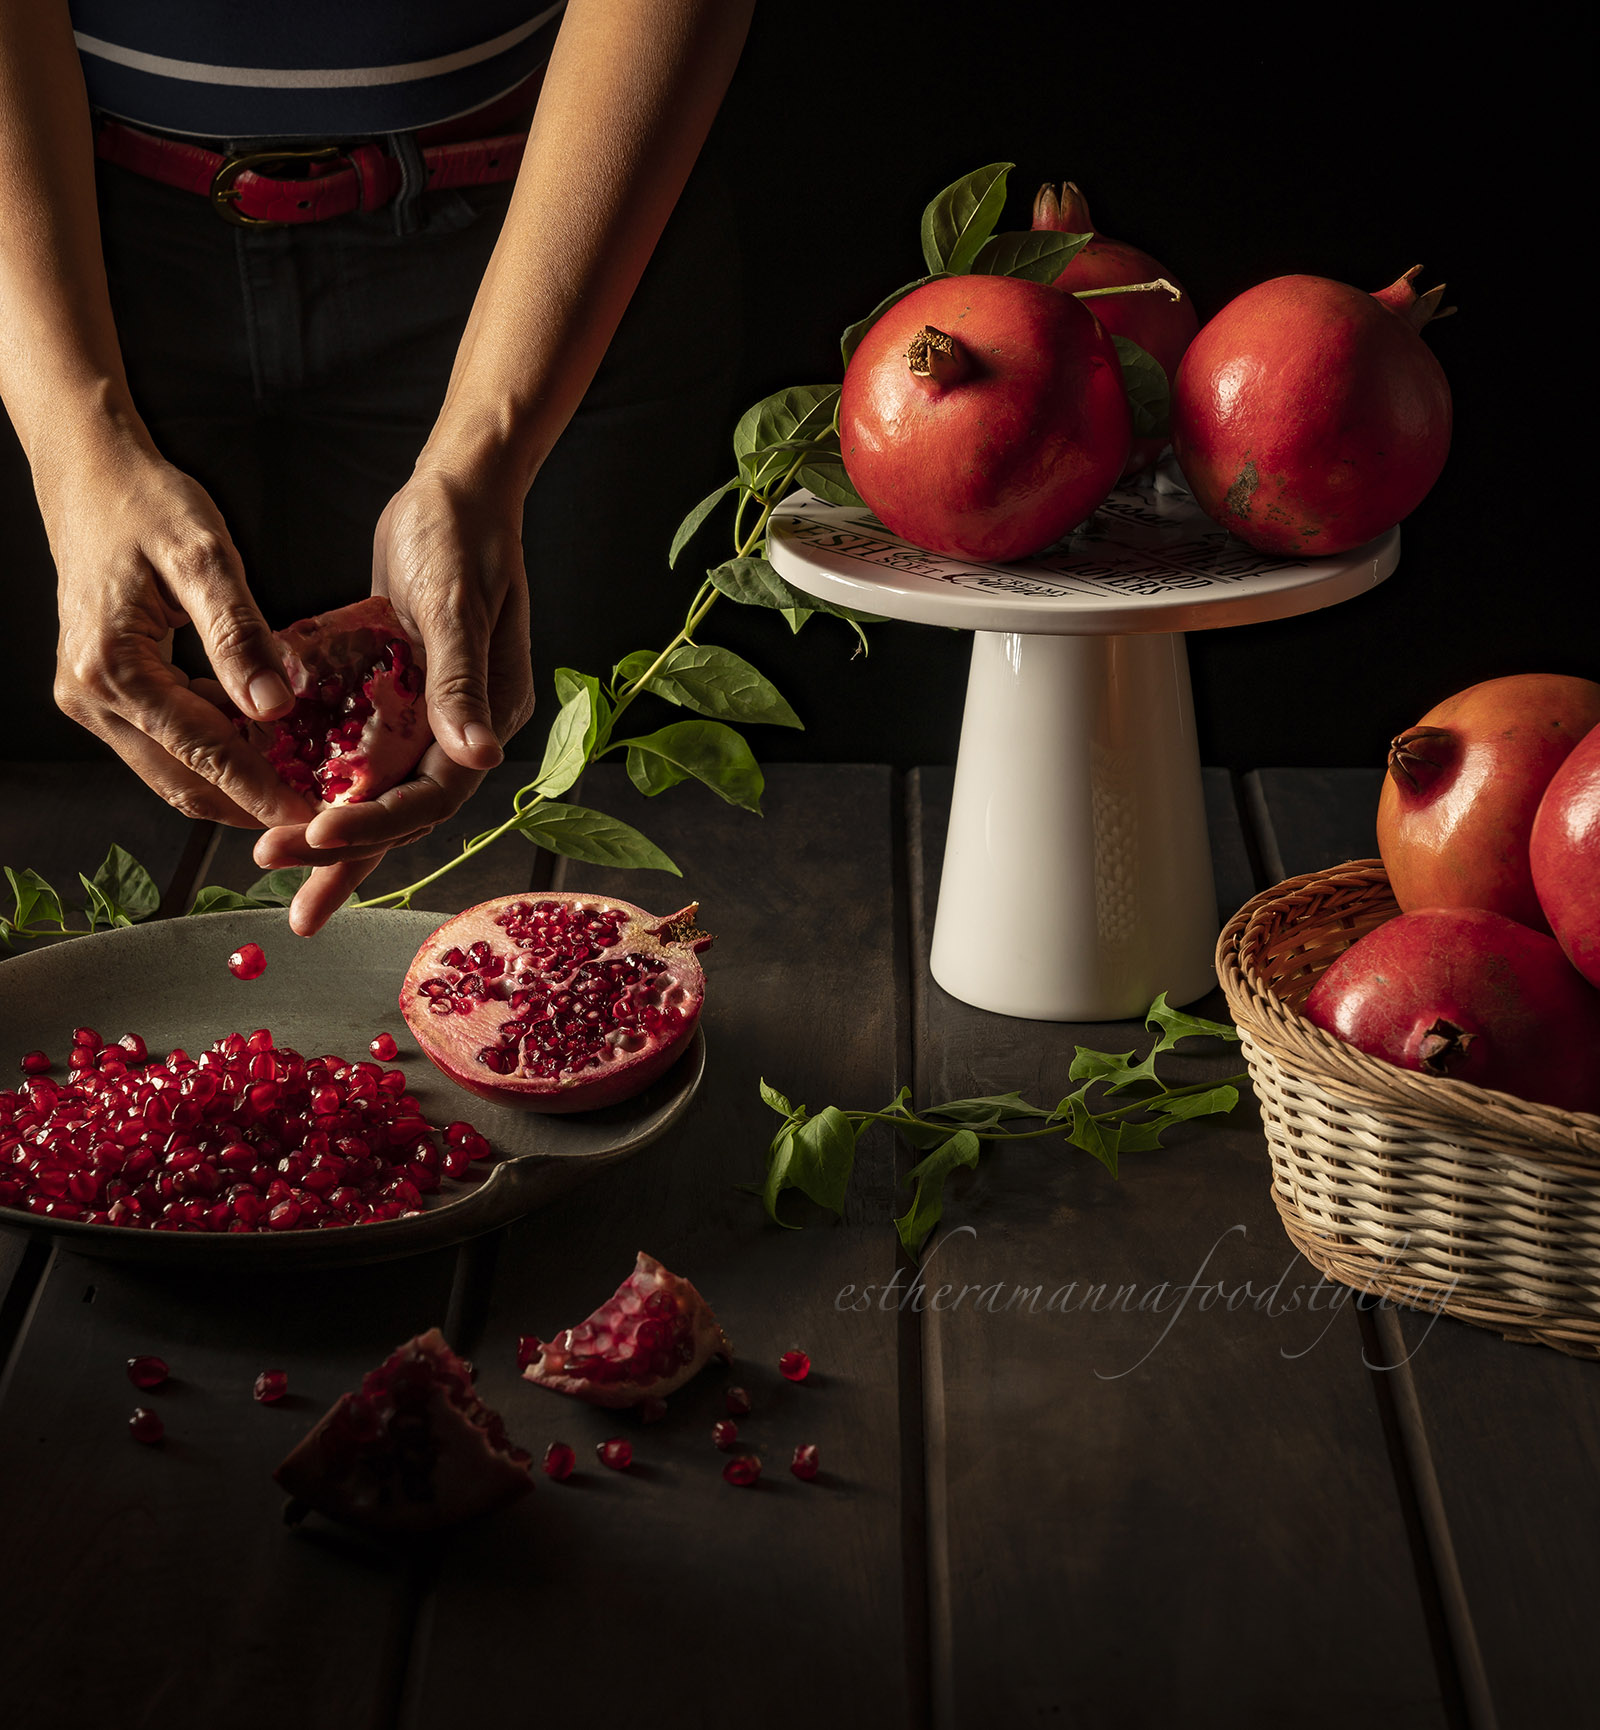 Fresh produce with pomegranates being shelled with hands. Food styling with a moody effect.